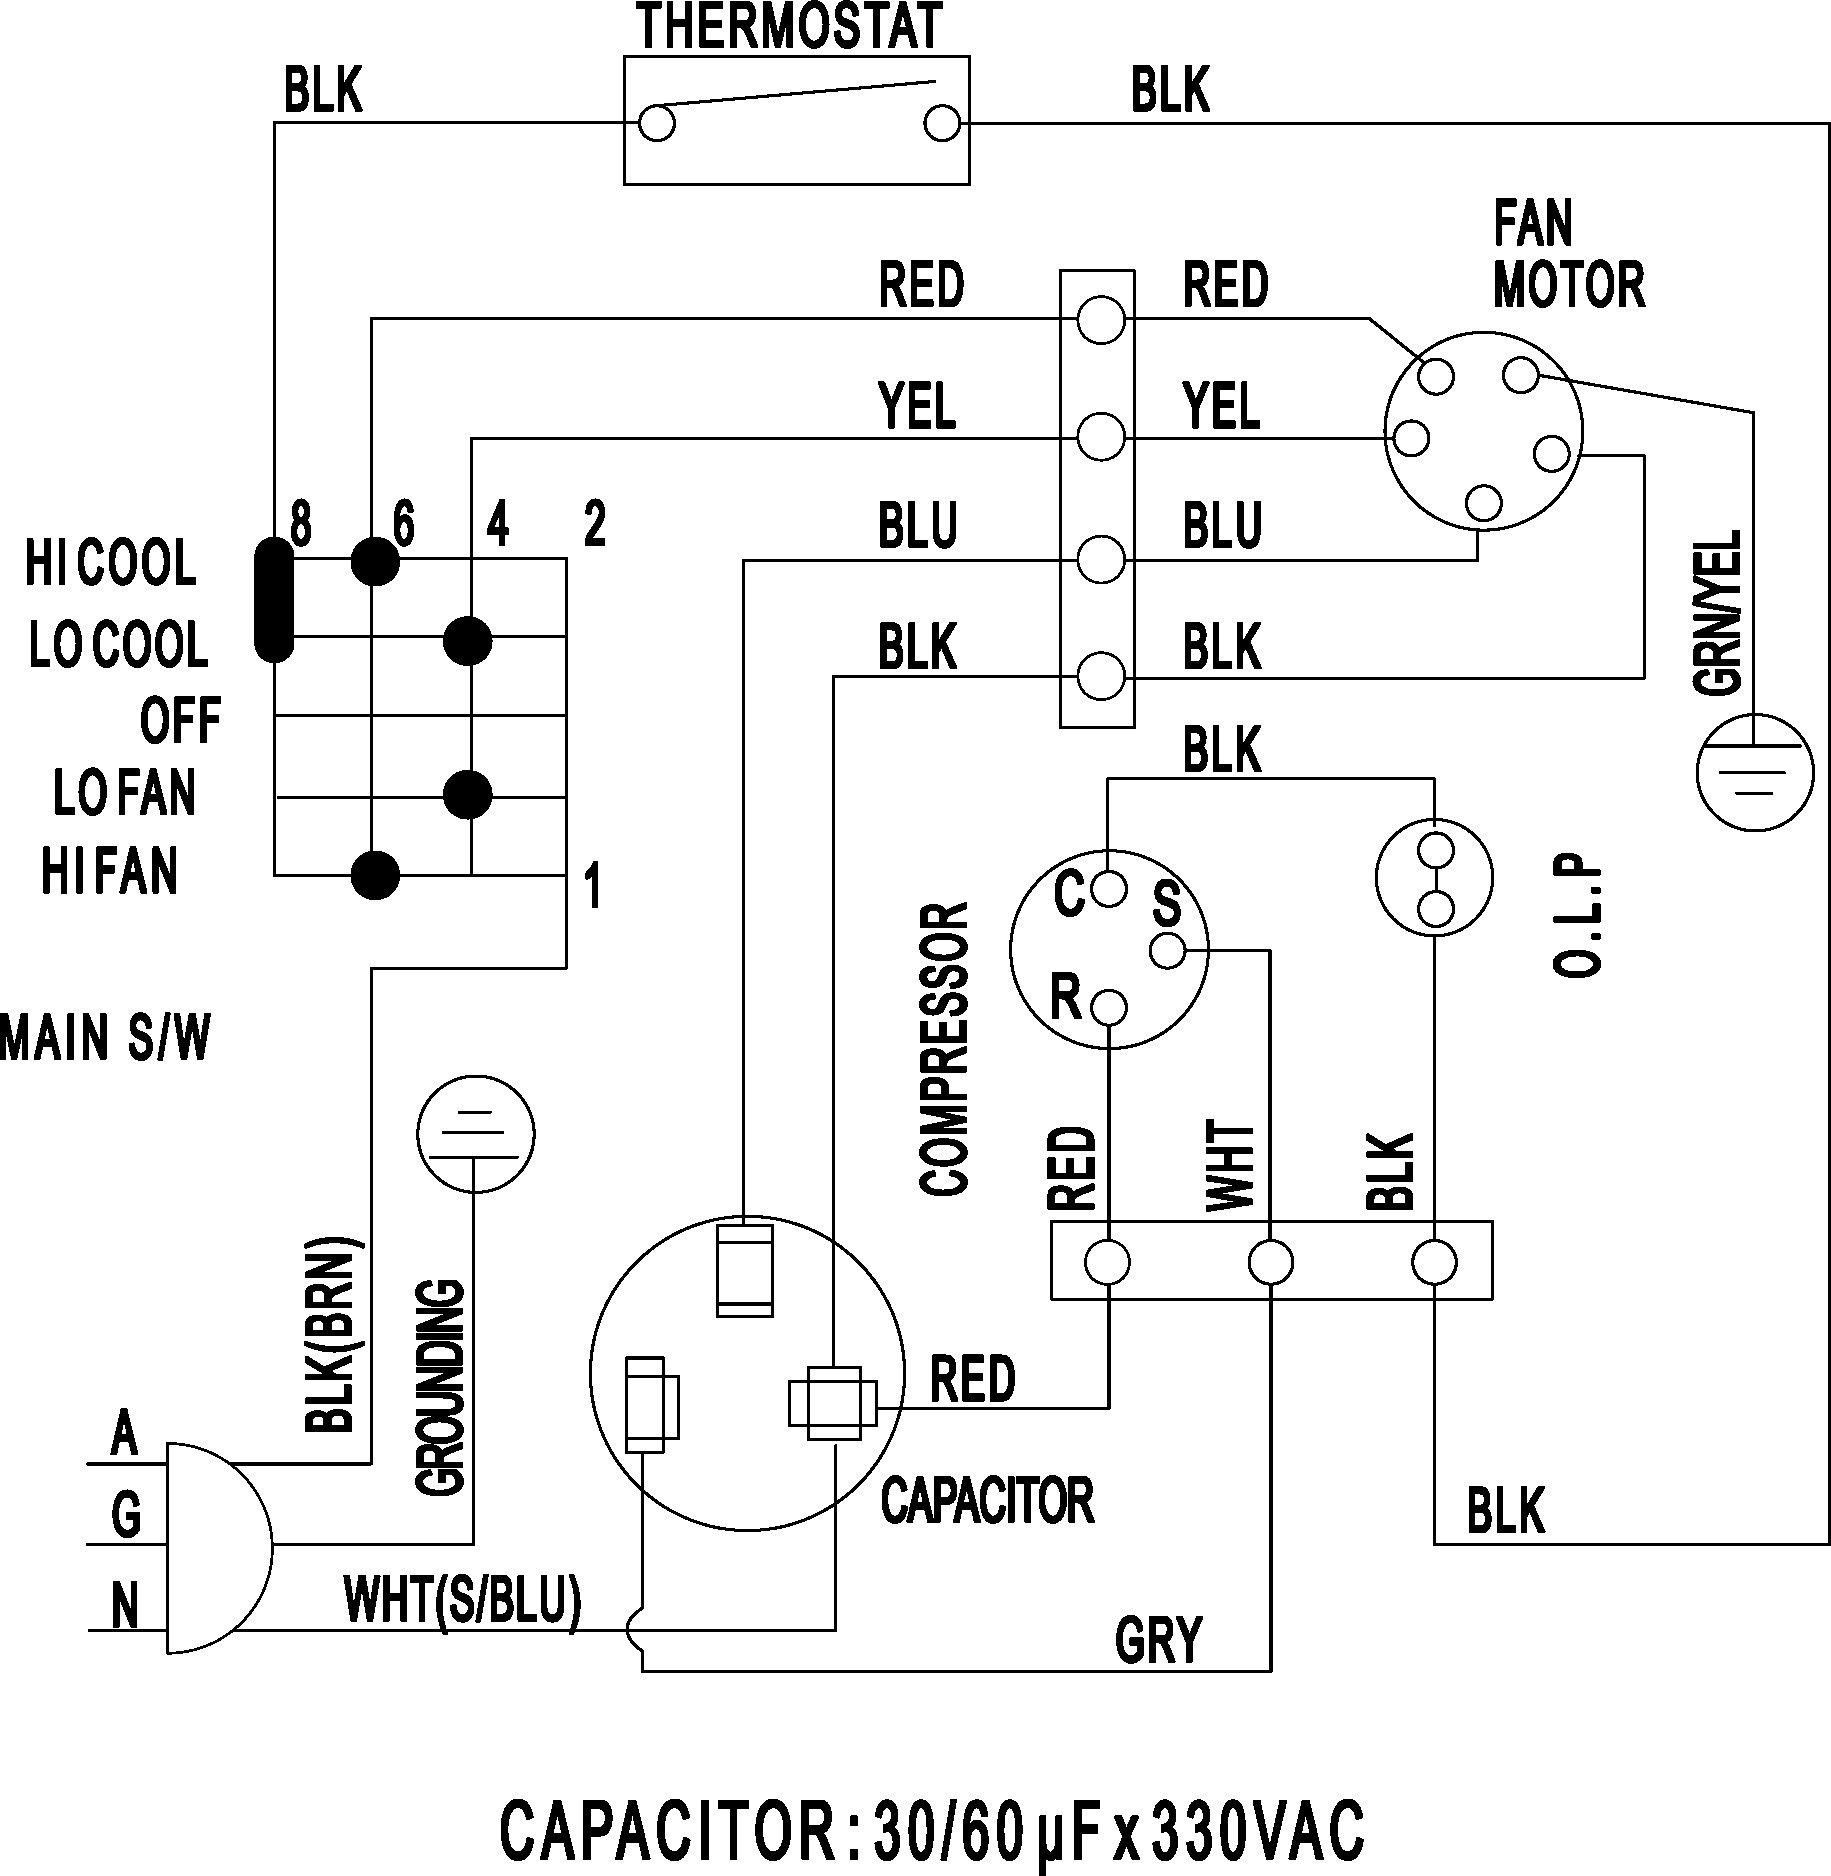 New Wiring Diagram Kompresor Ac